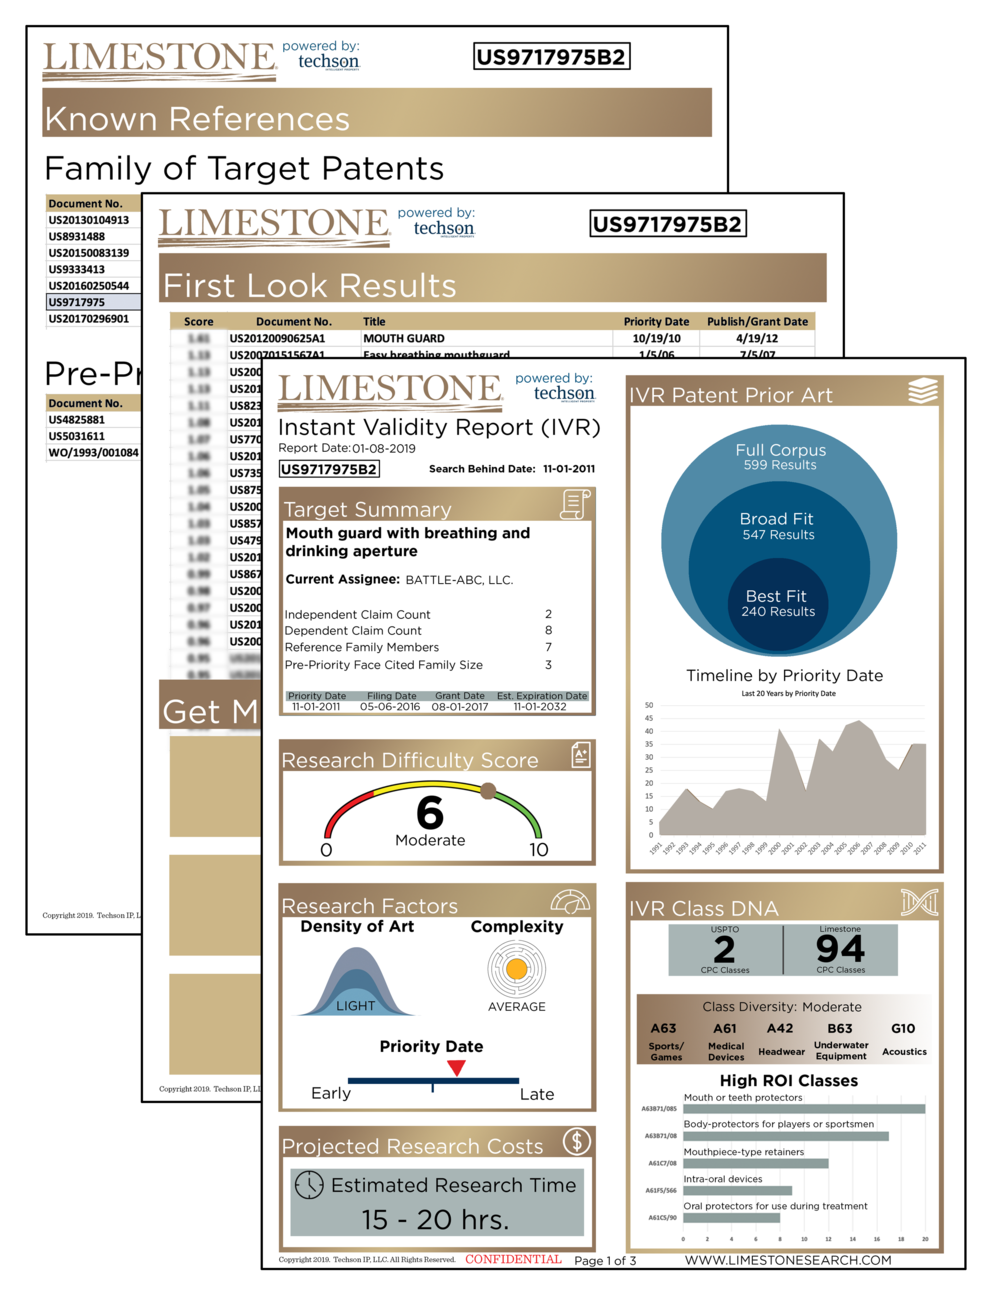 Limestone EnabledReports - Limestone Enabled Reports allow you to understand the scope of art ahead of you and get right into references that matter. Your first report is free!